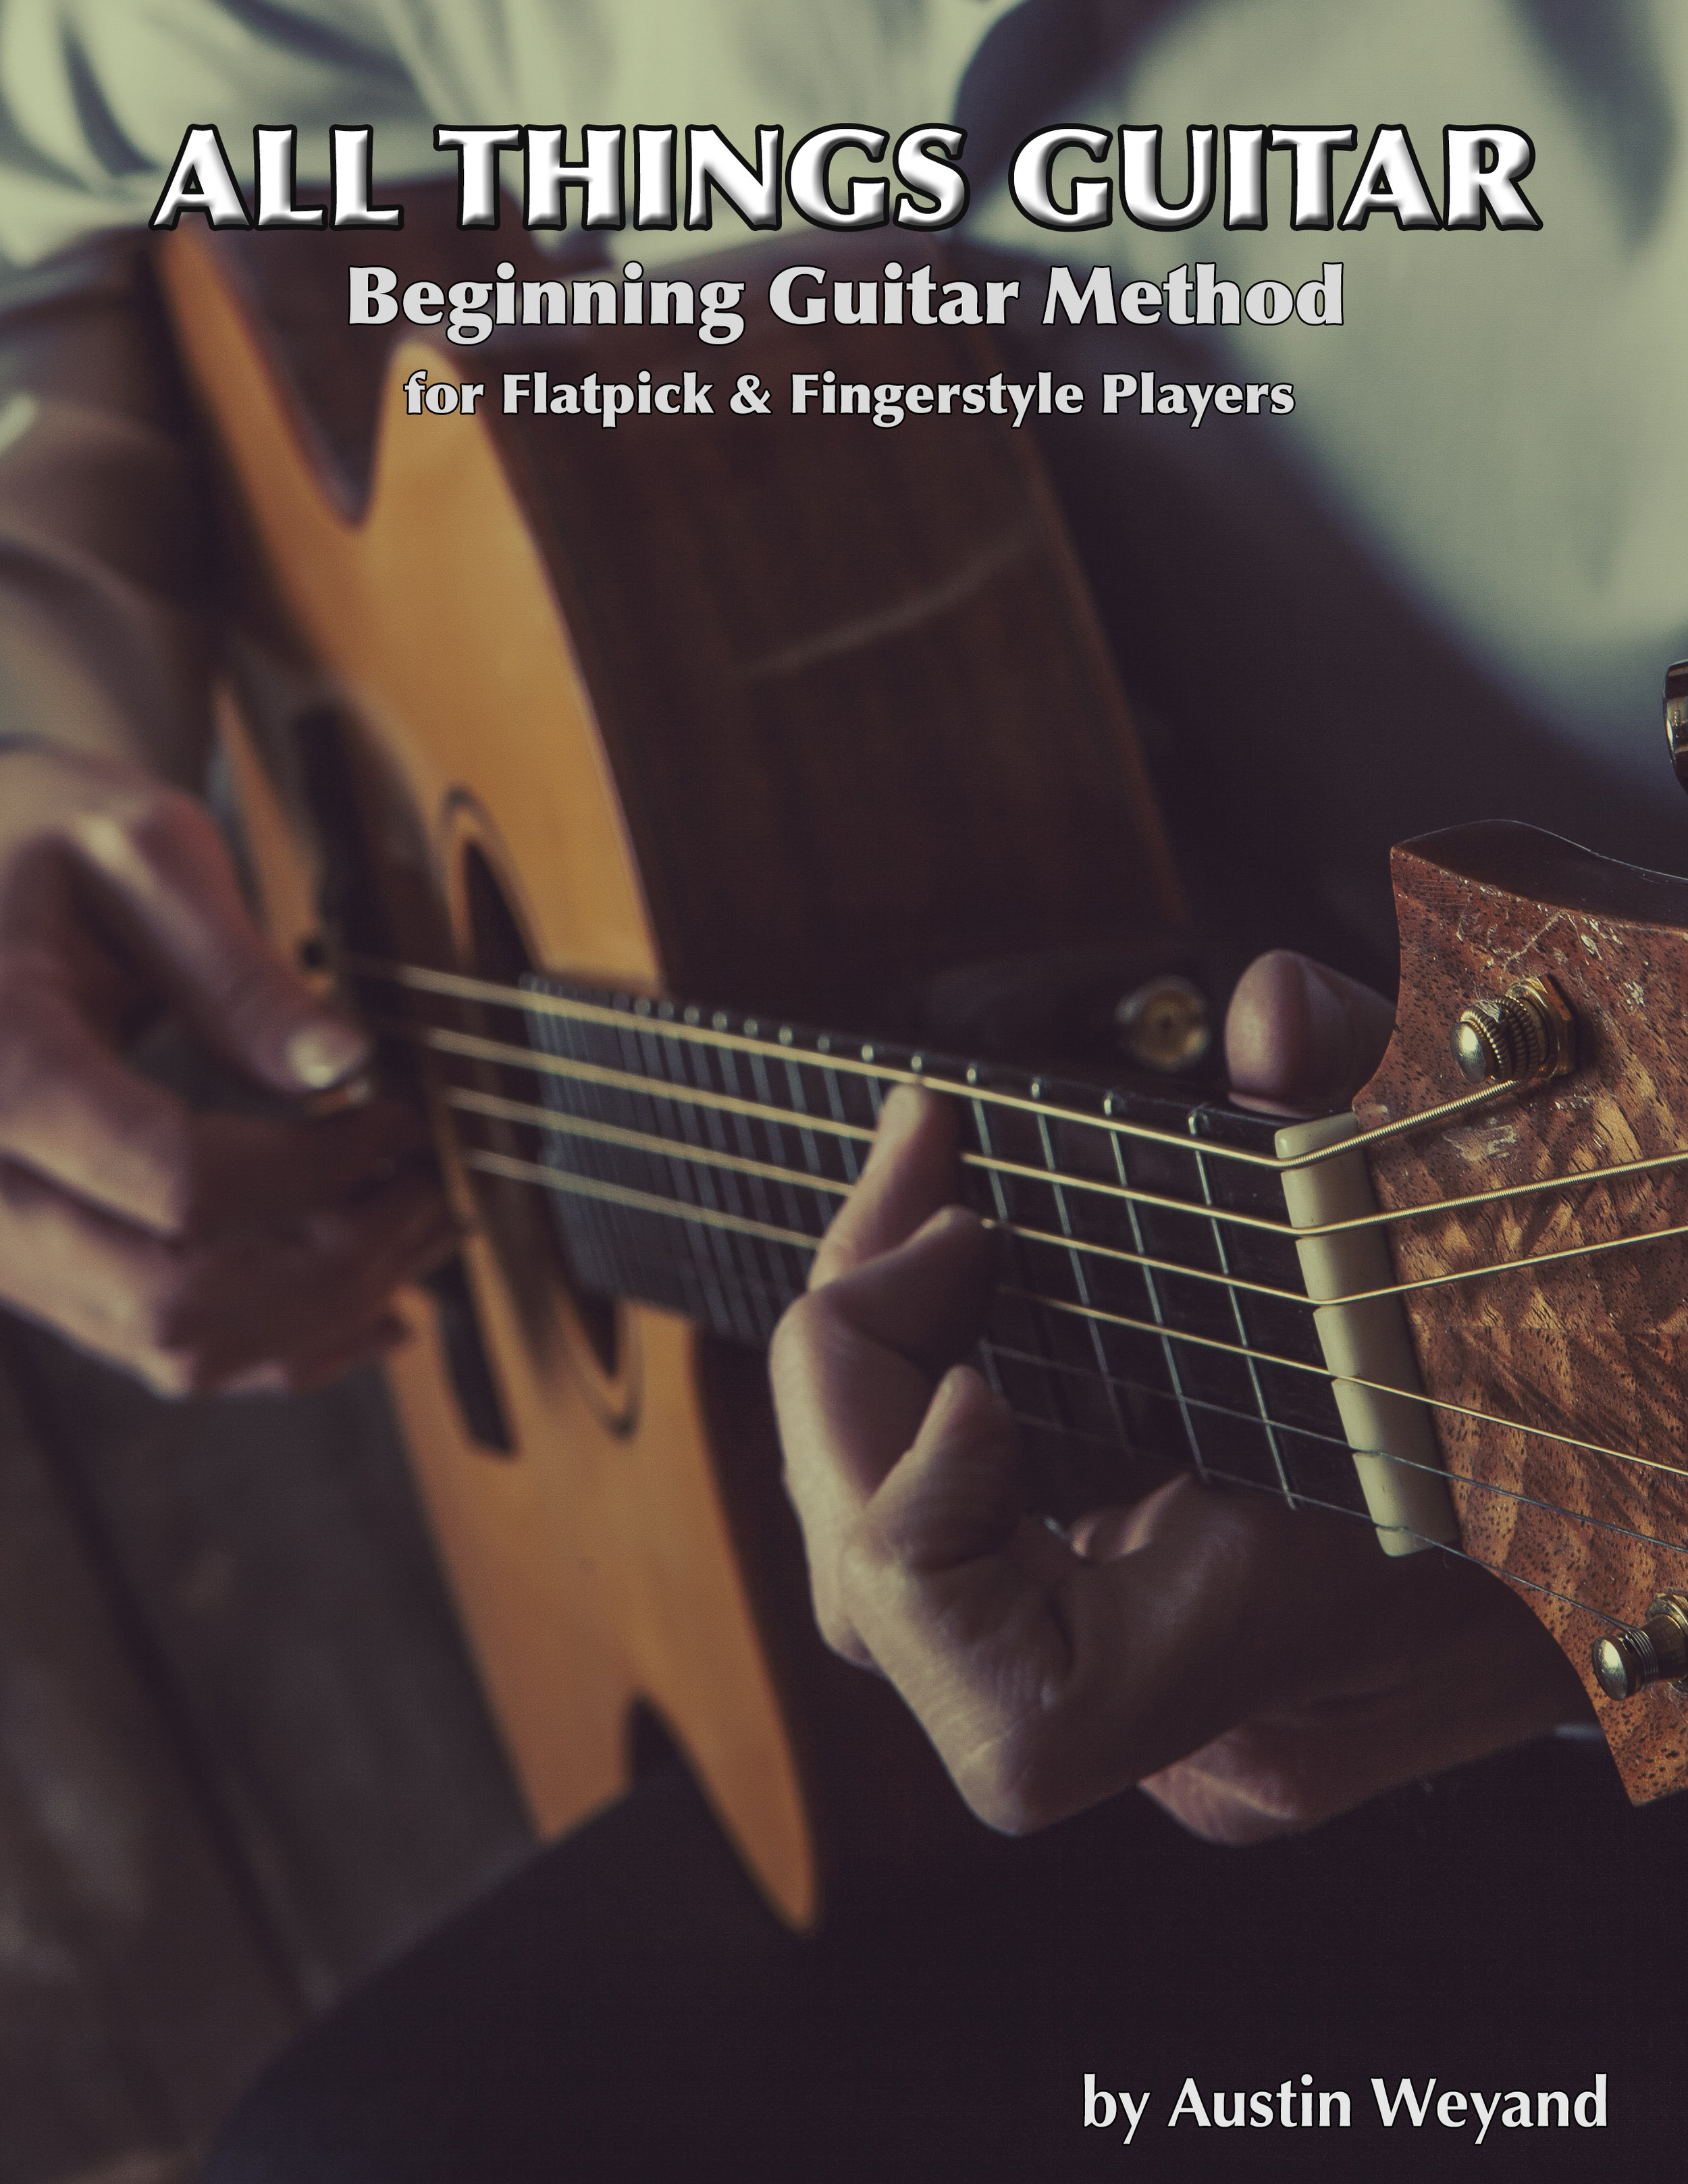 All Things Guitar Front Cover.jpg